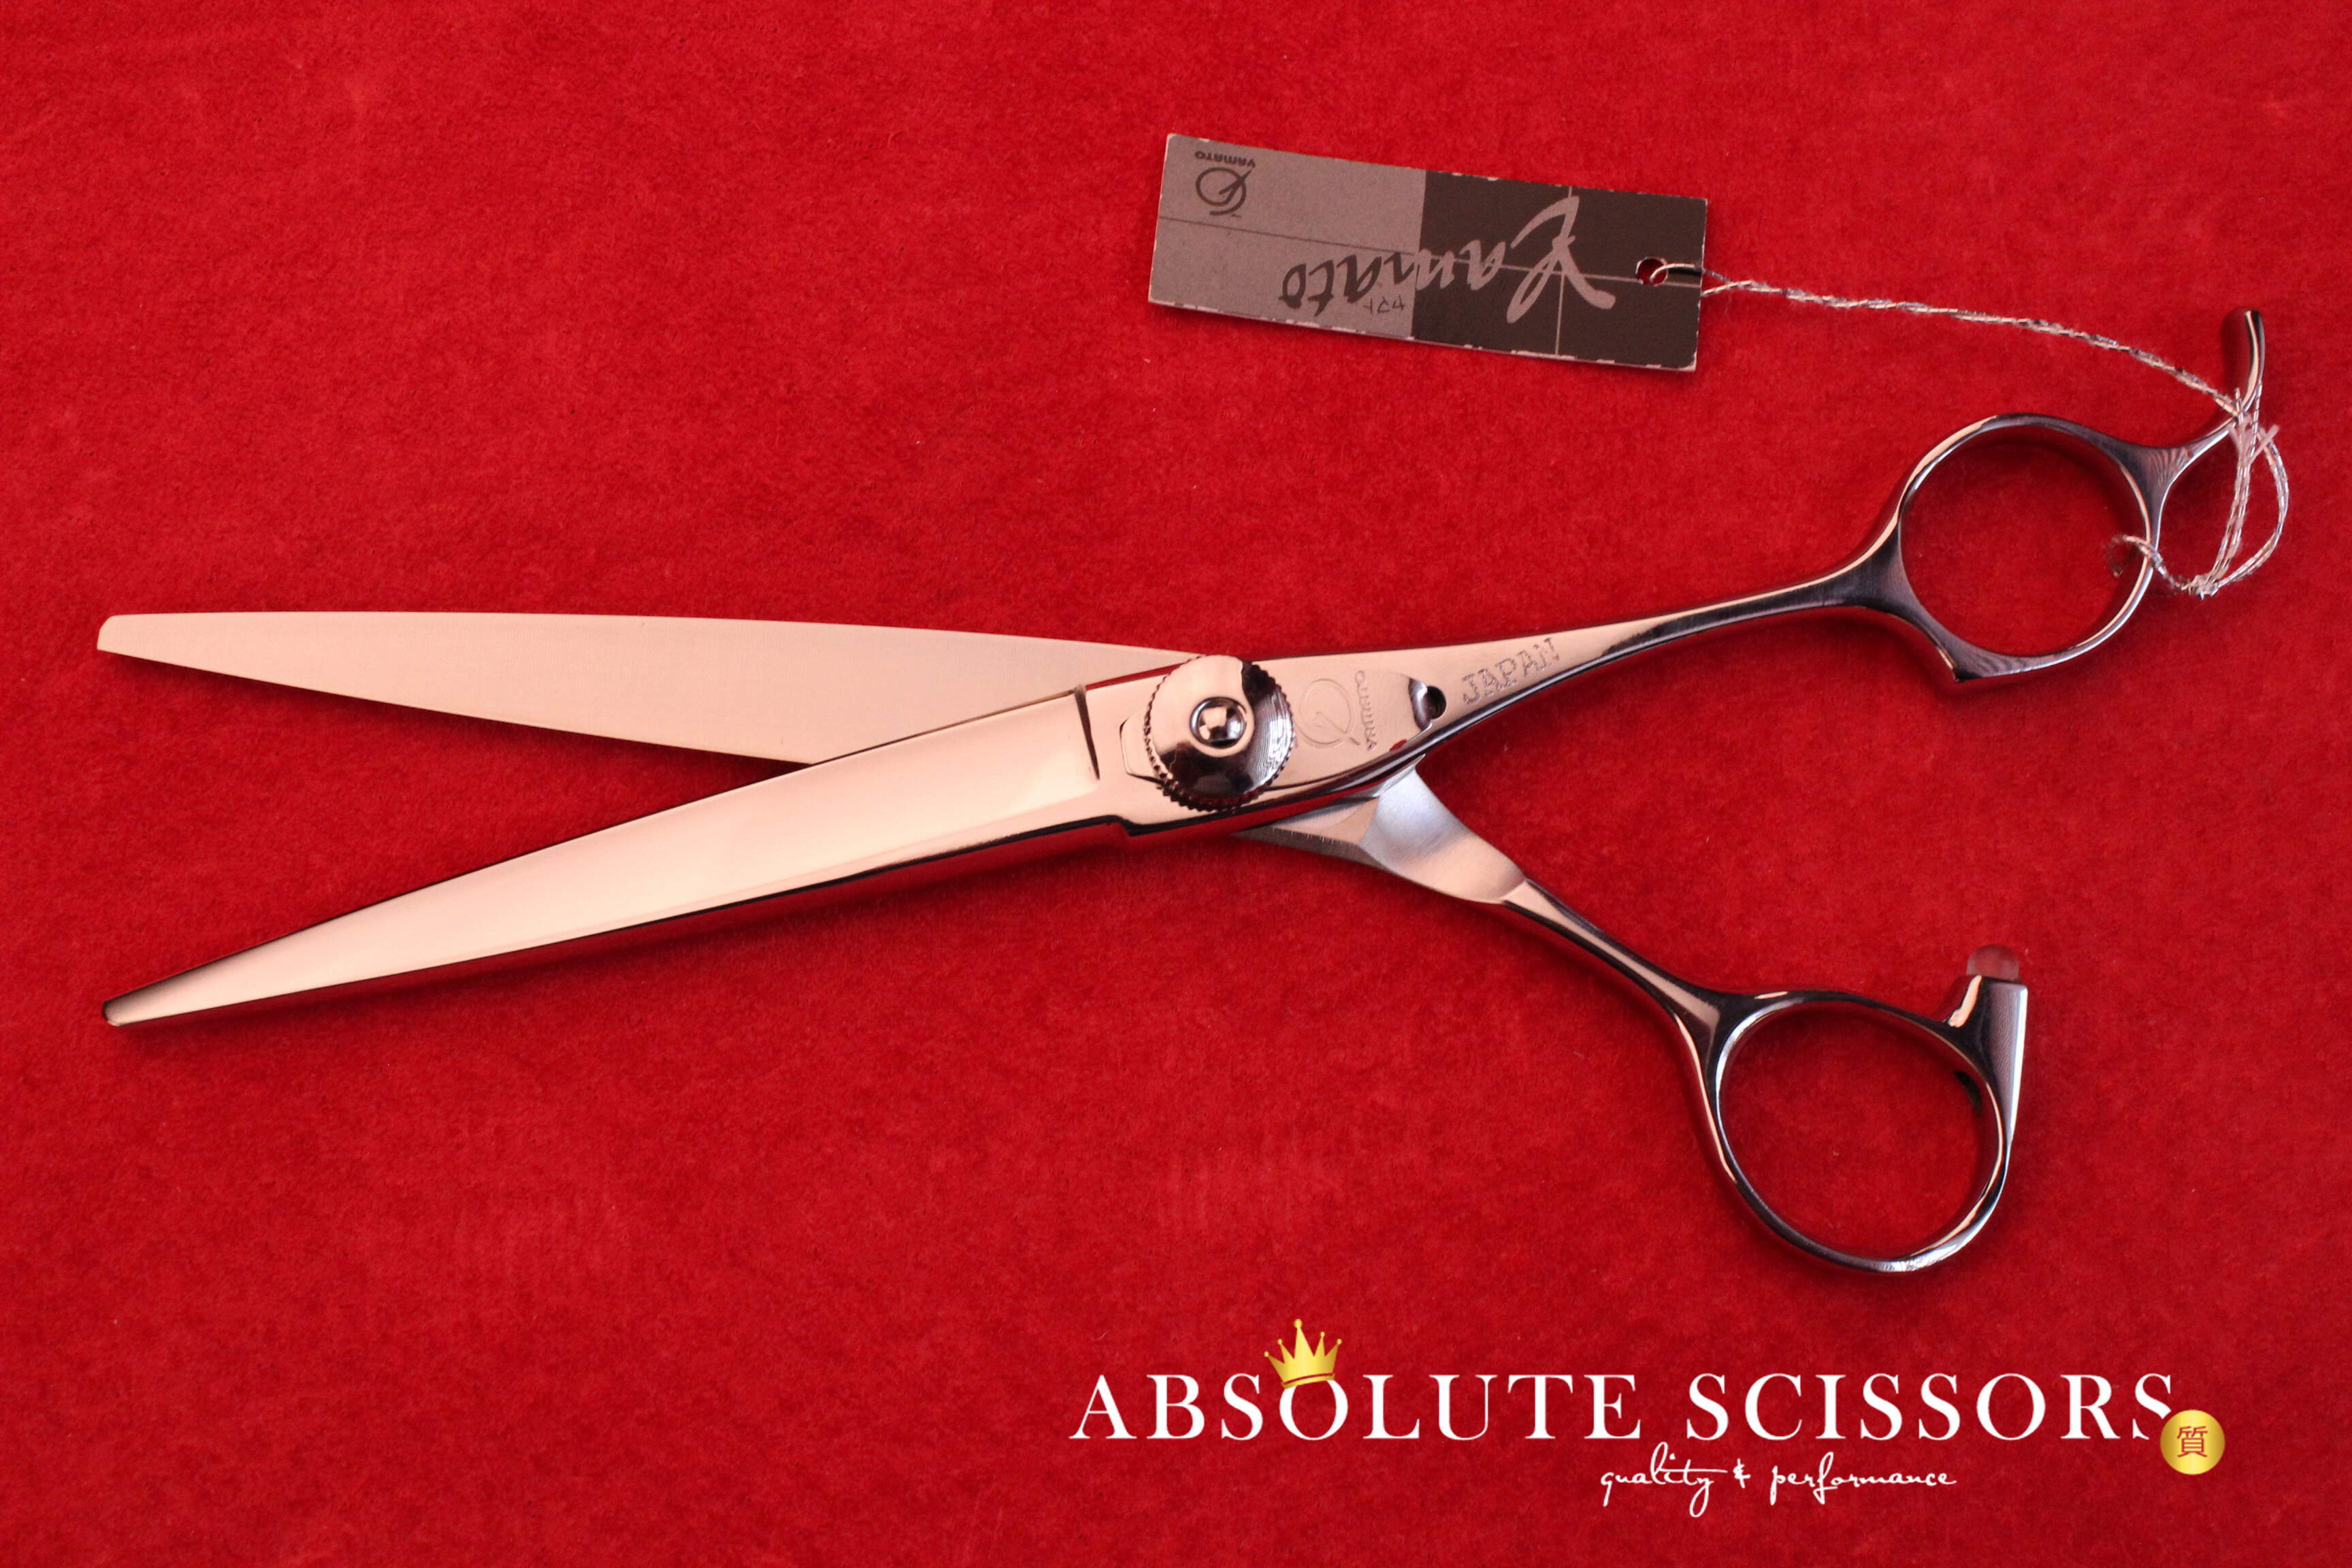 Wing N65 3716 Yamato hair scissors shears size 6.5 inches